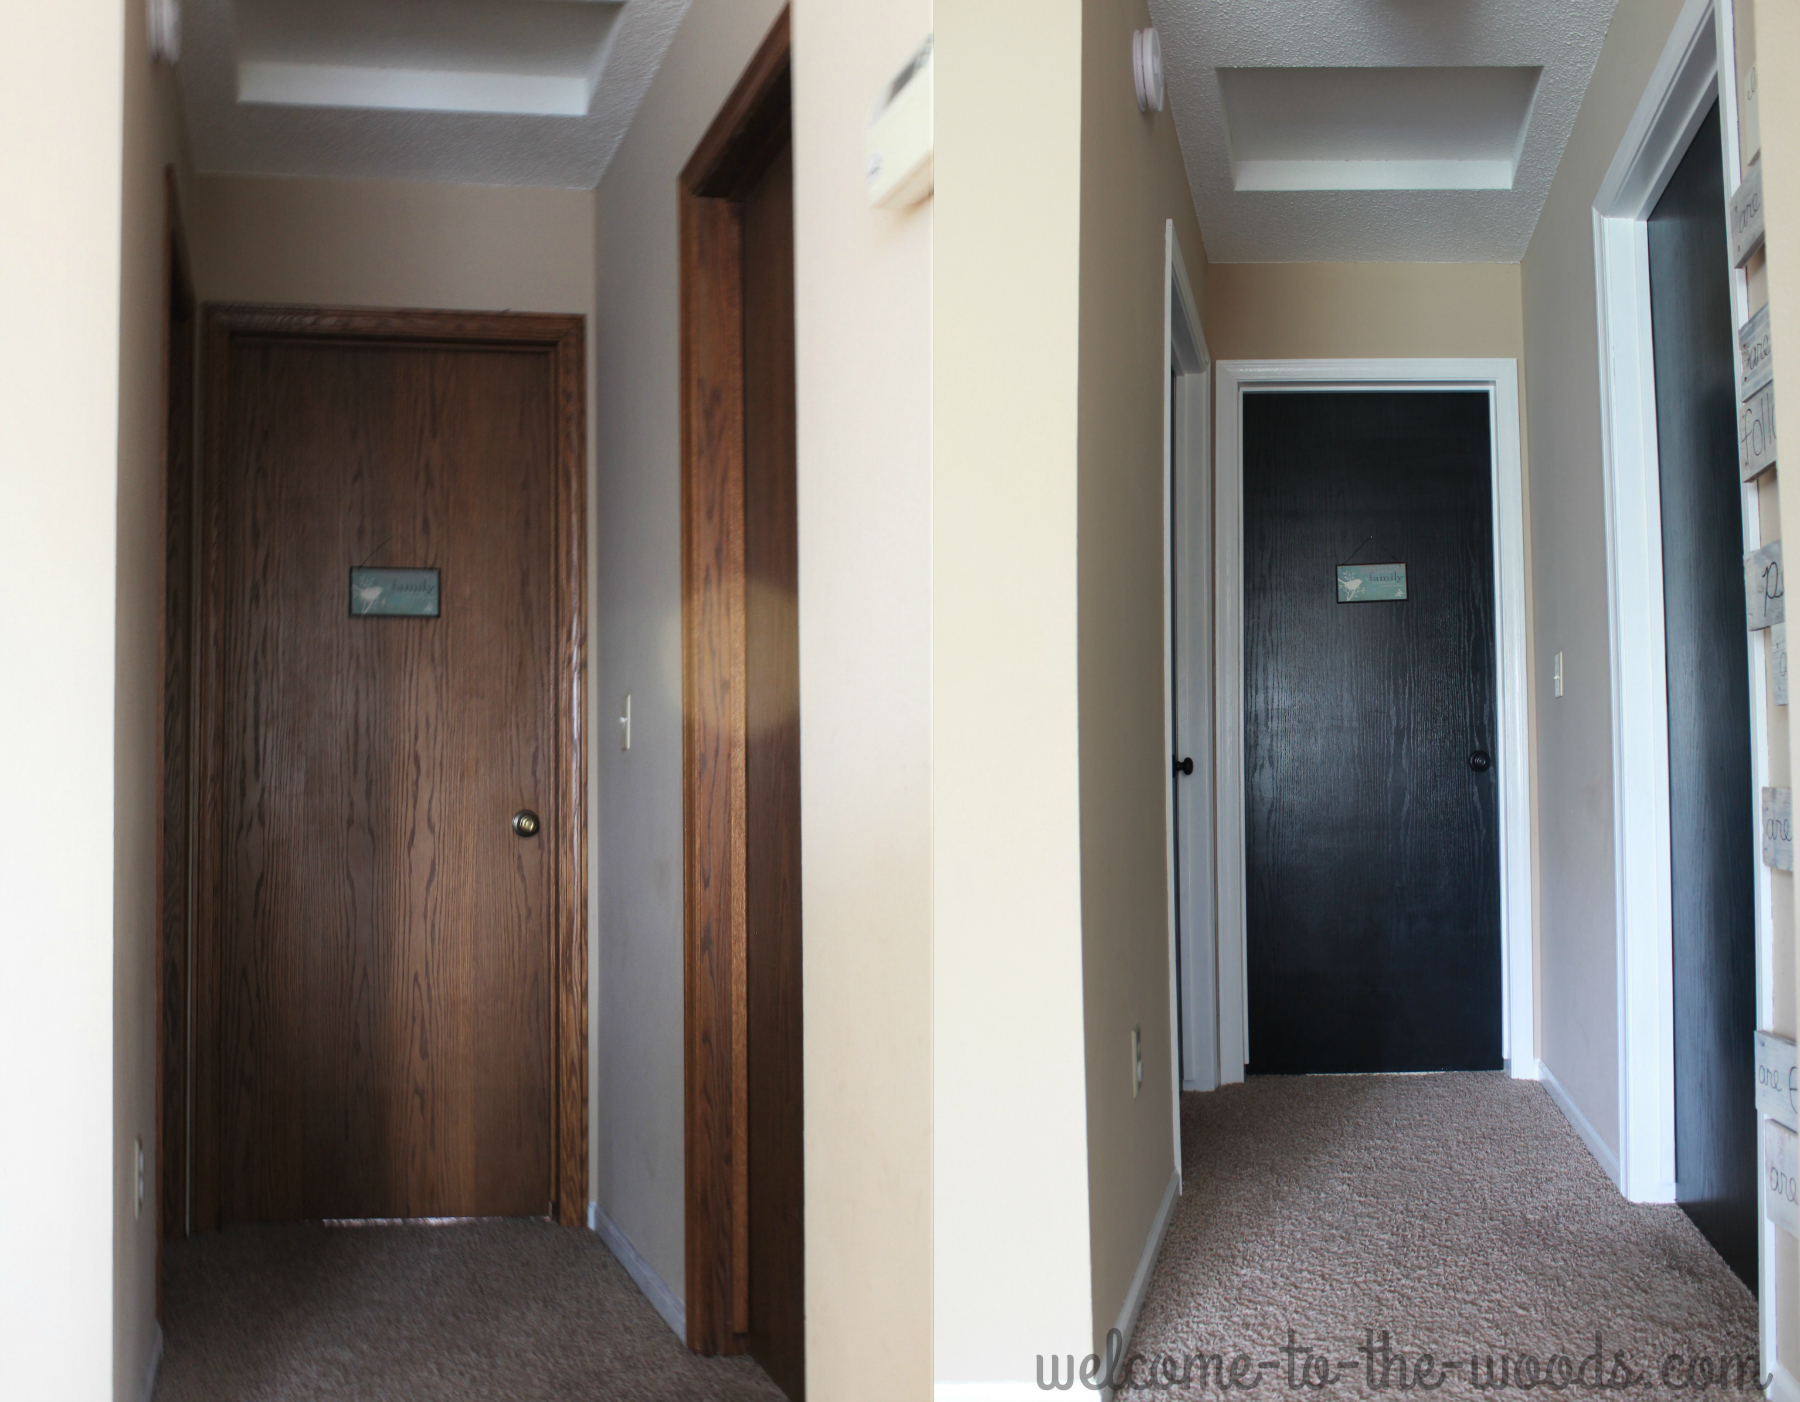 Painting Foyer Doors : Hallway makeover white trim reveal welcome to the woods